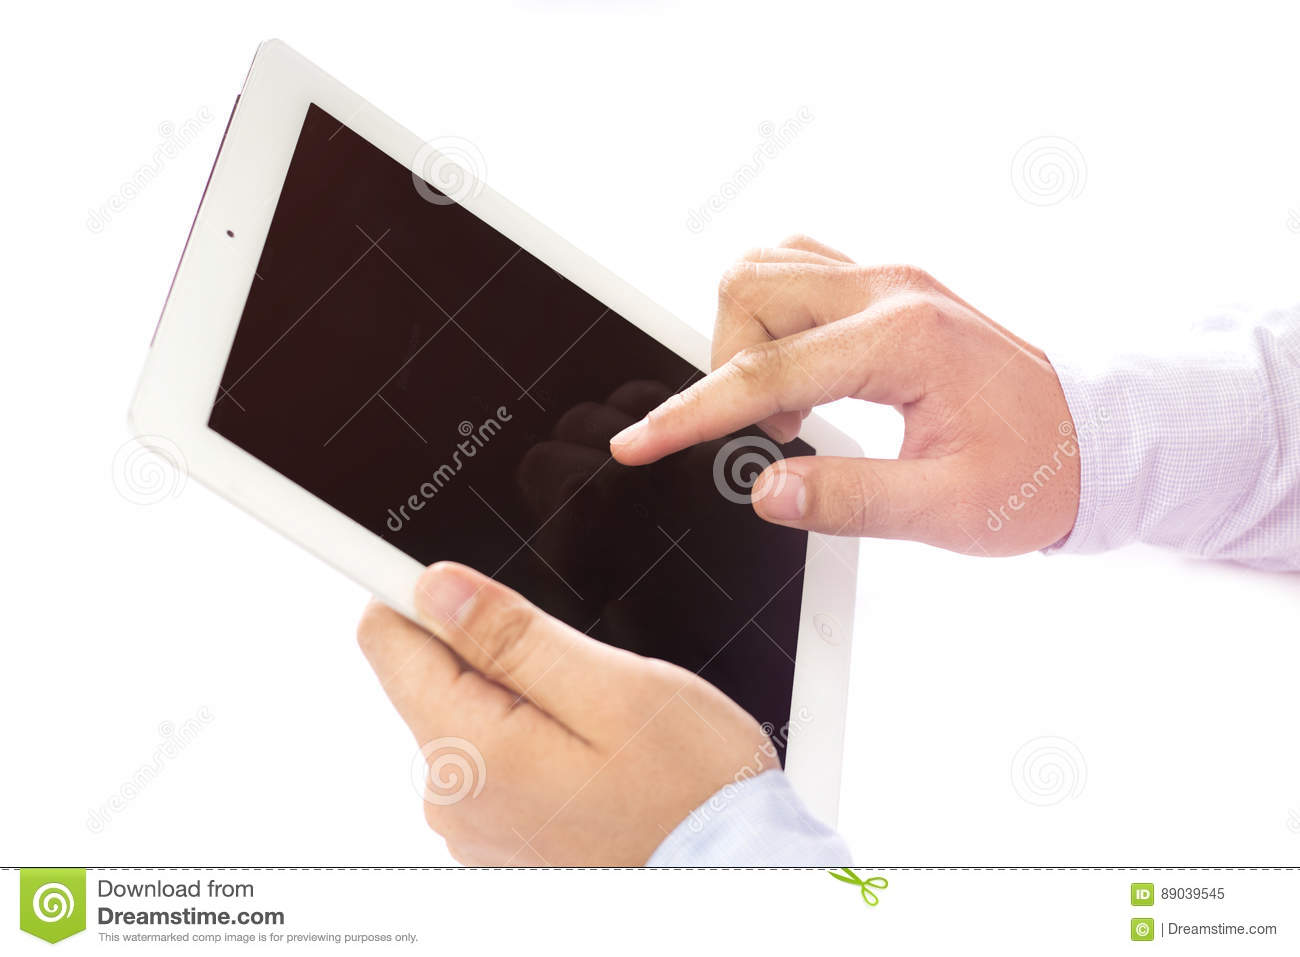 Touching finger in digital touchpad inside a room on a wooden table